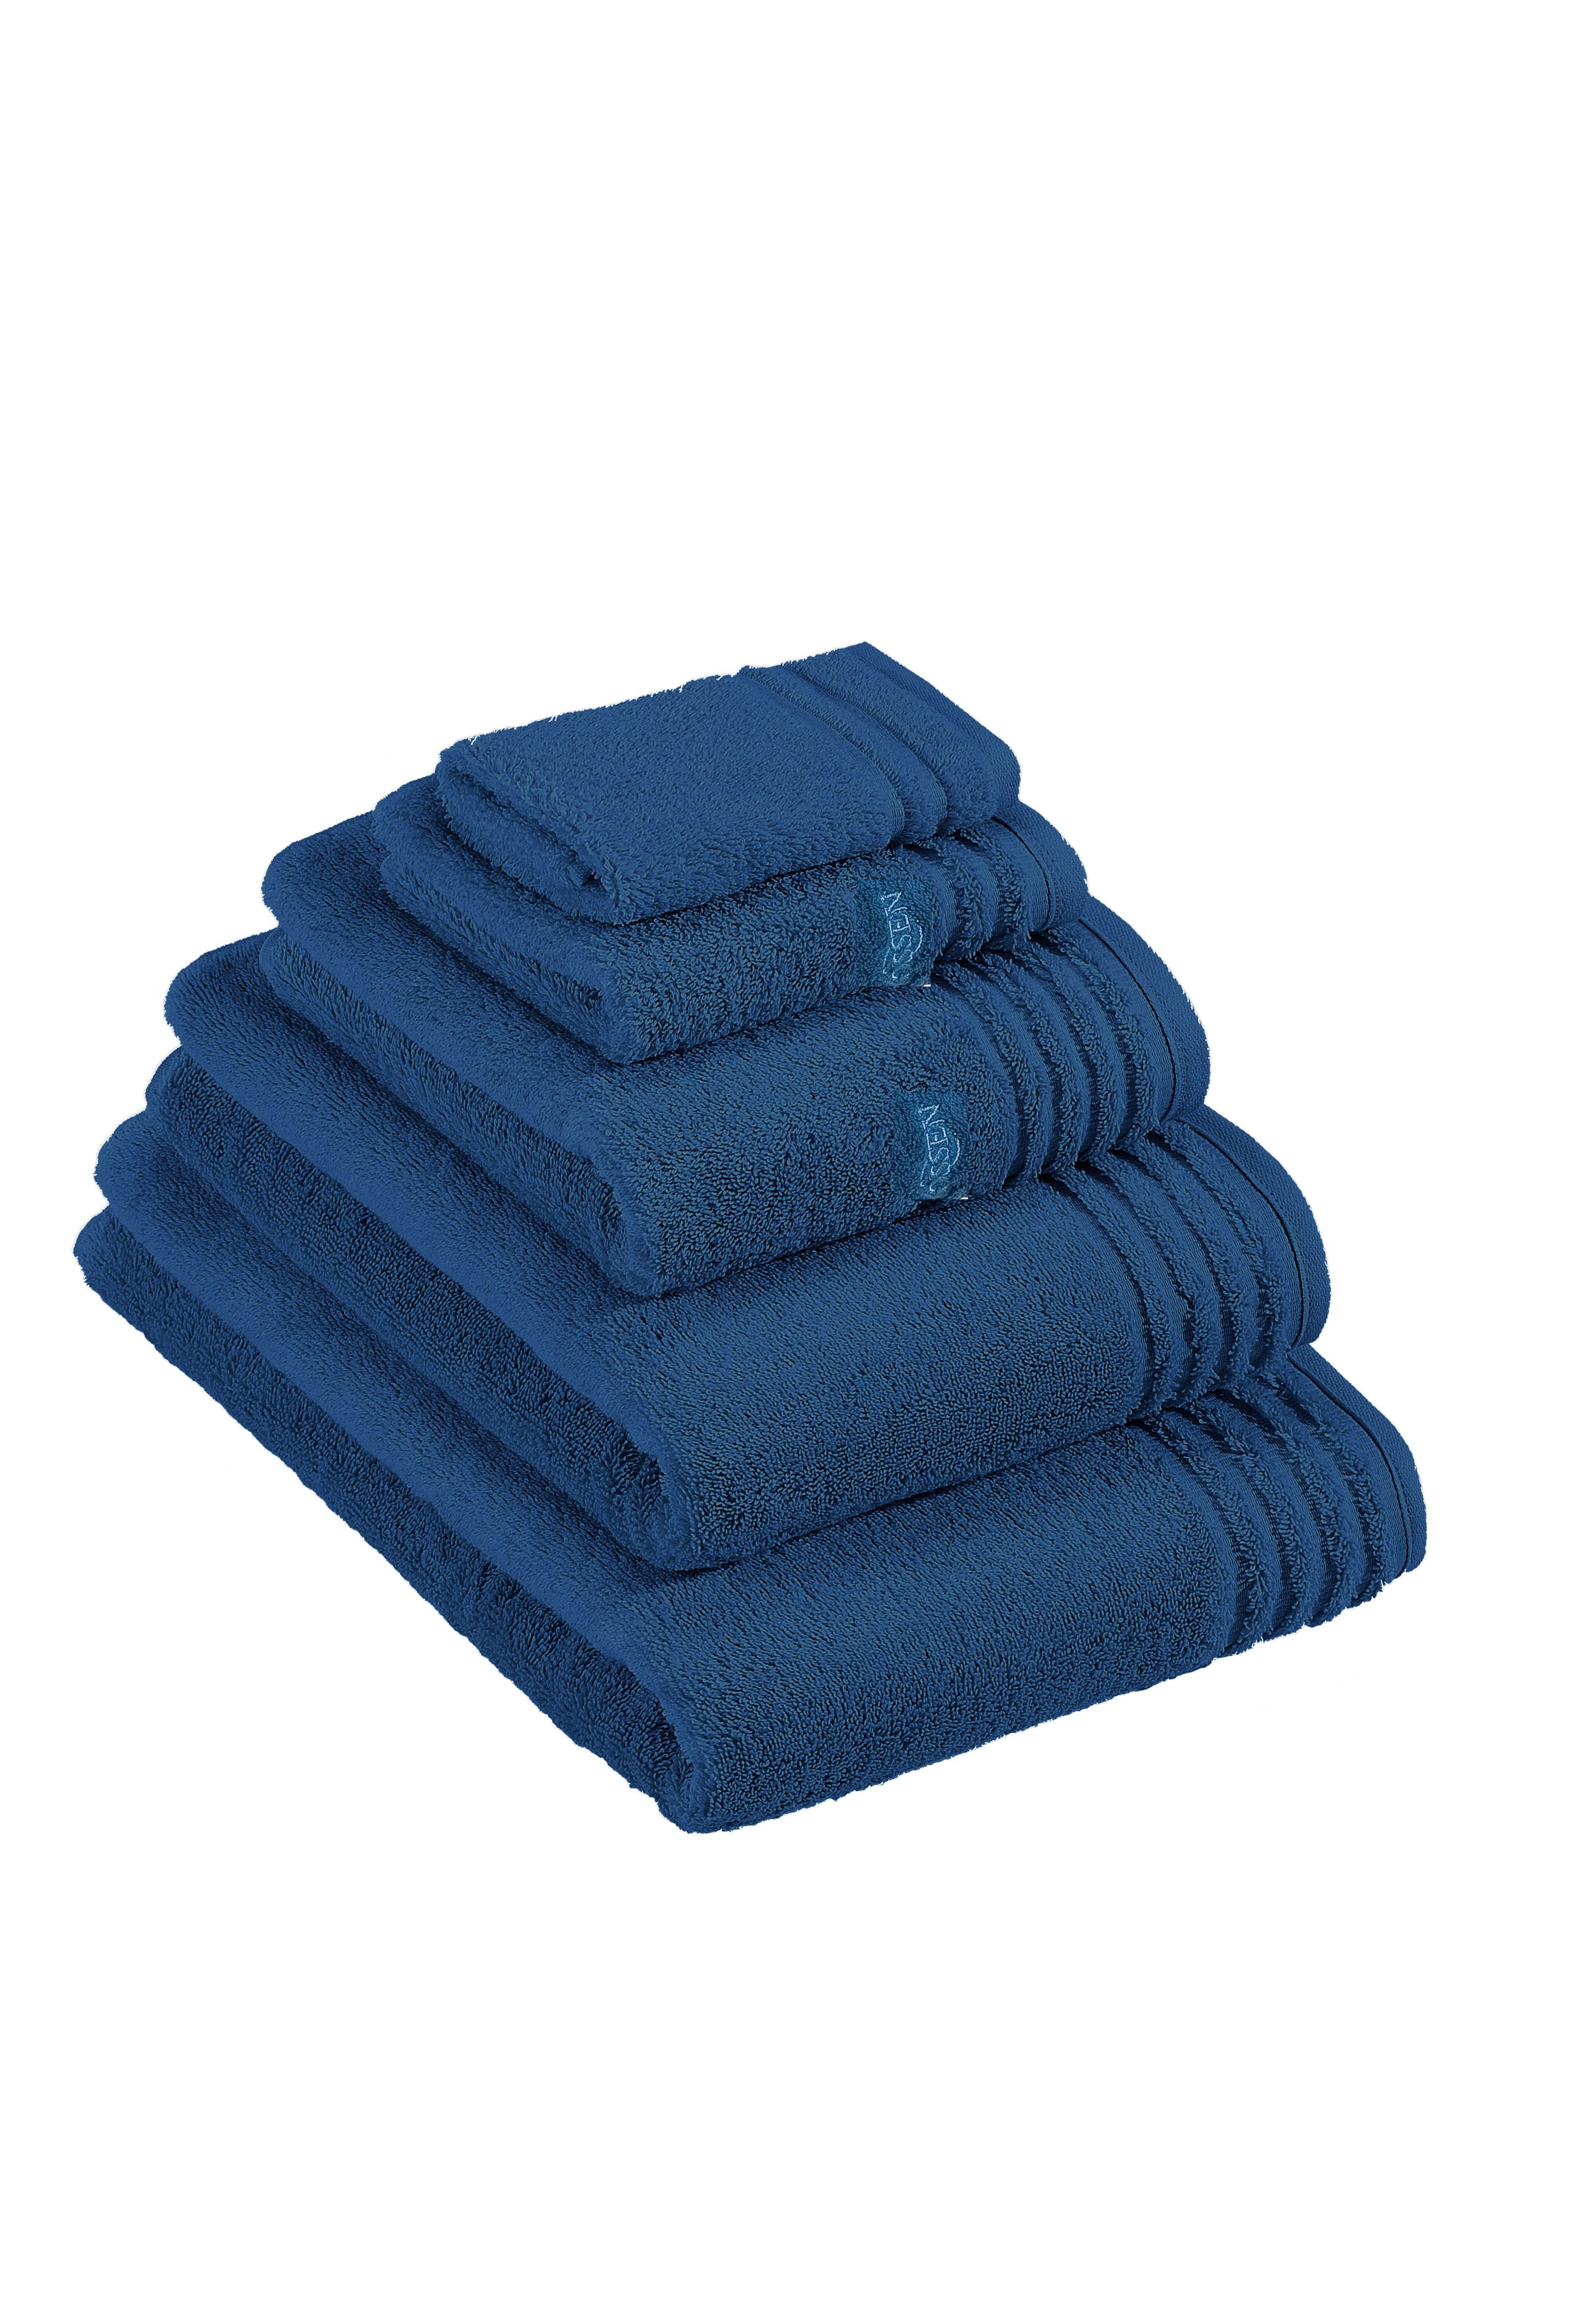 Vienna towel range in nightfall